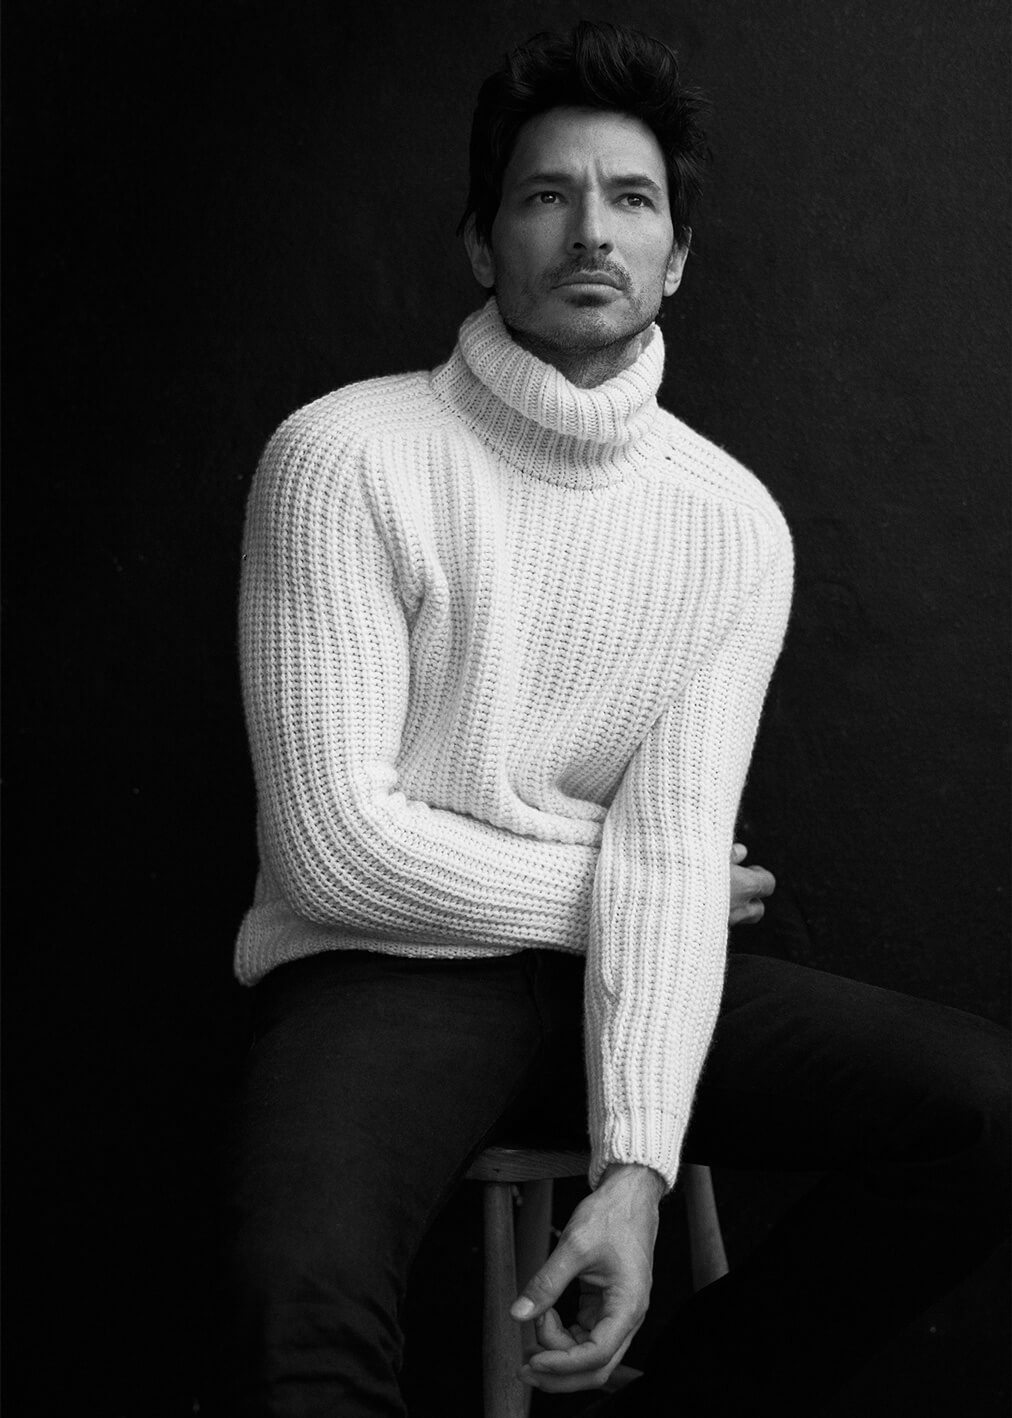 Portrait of Andres Velencoso by Alex Waltl